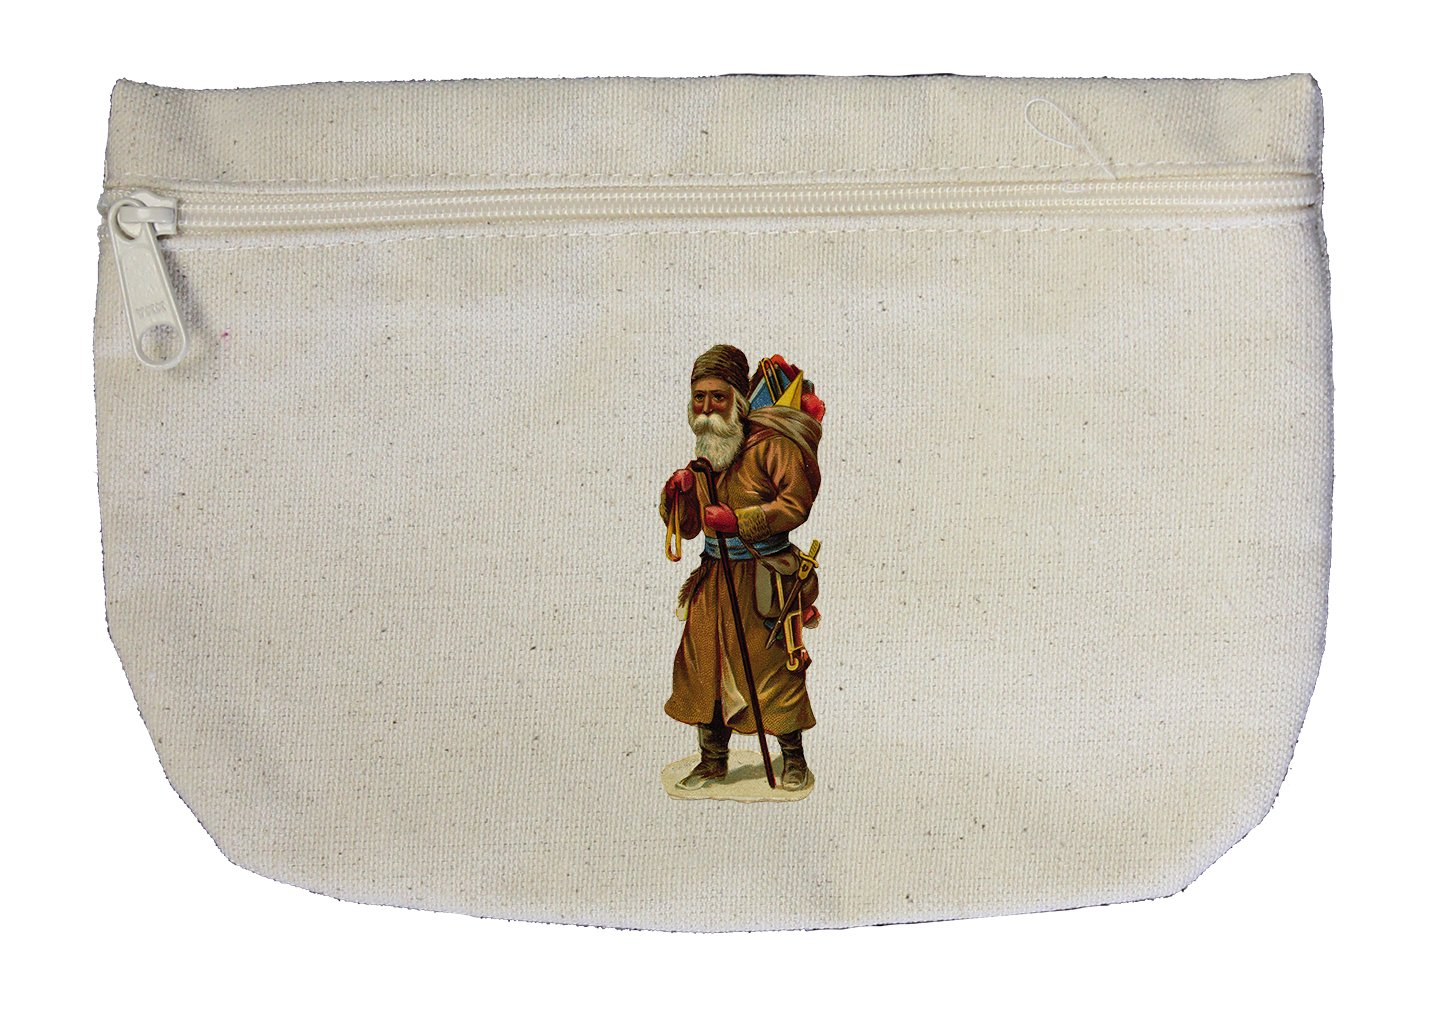 Canvas Pouch Zipper Makeup Bag Santa In Brown Coat Holidays By Style In Print